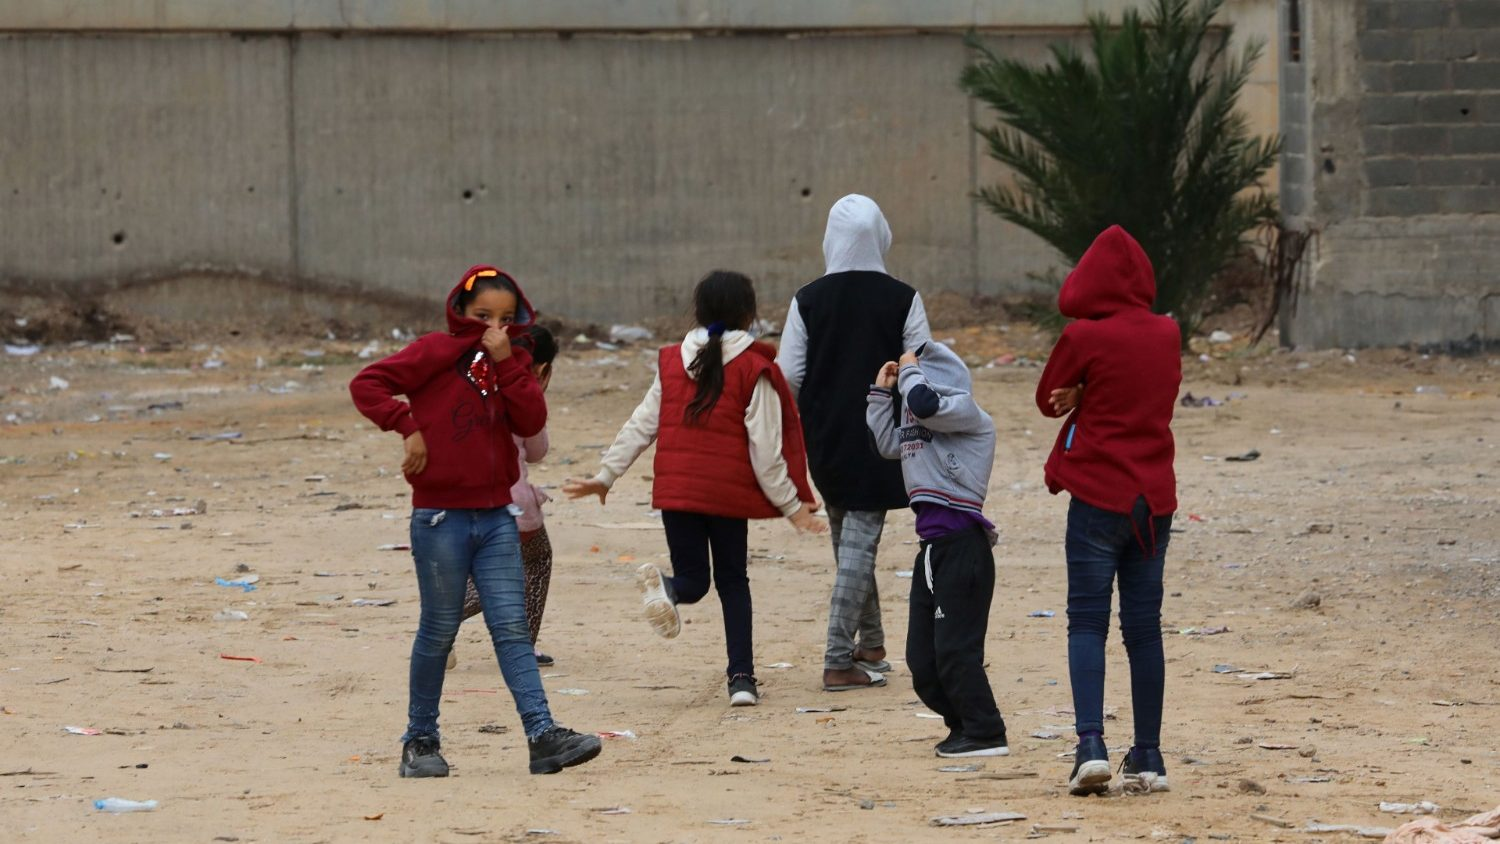 Libya: thousands of children at risk amidst ongoing conflict